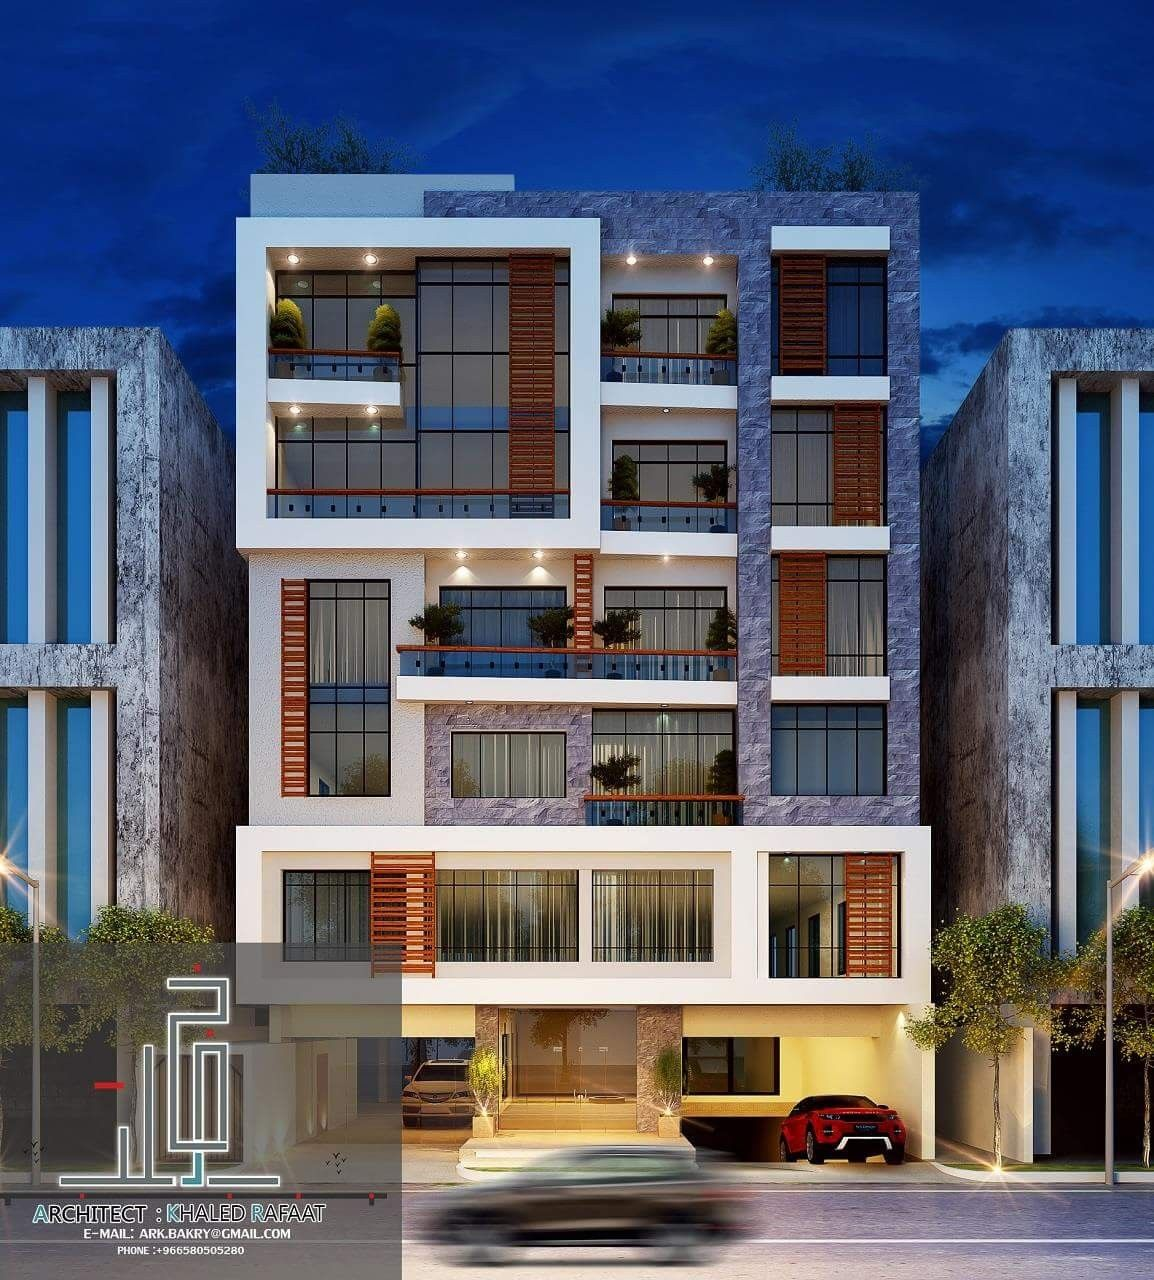 Front Elevation Design Ideas From Architects In Jaipur: Elevation-2 By Dwarkadhish&Co.